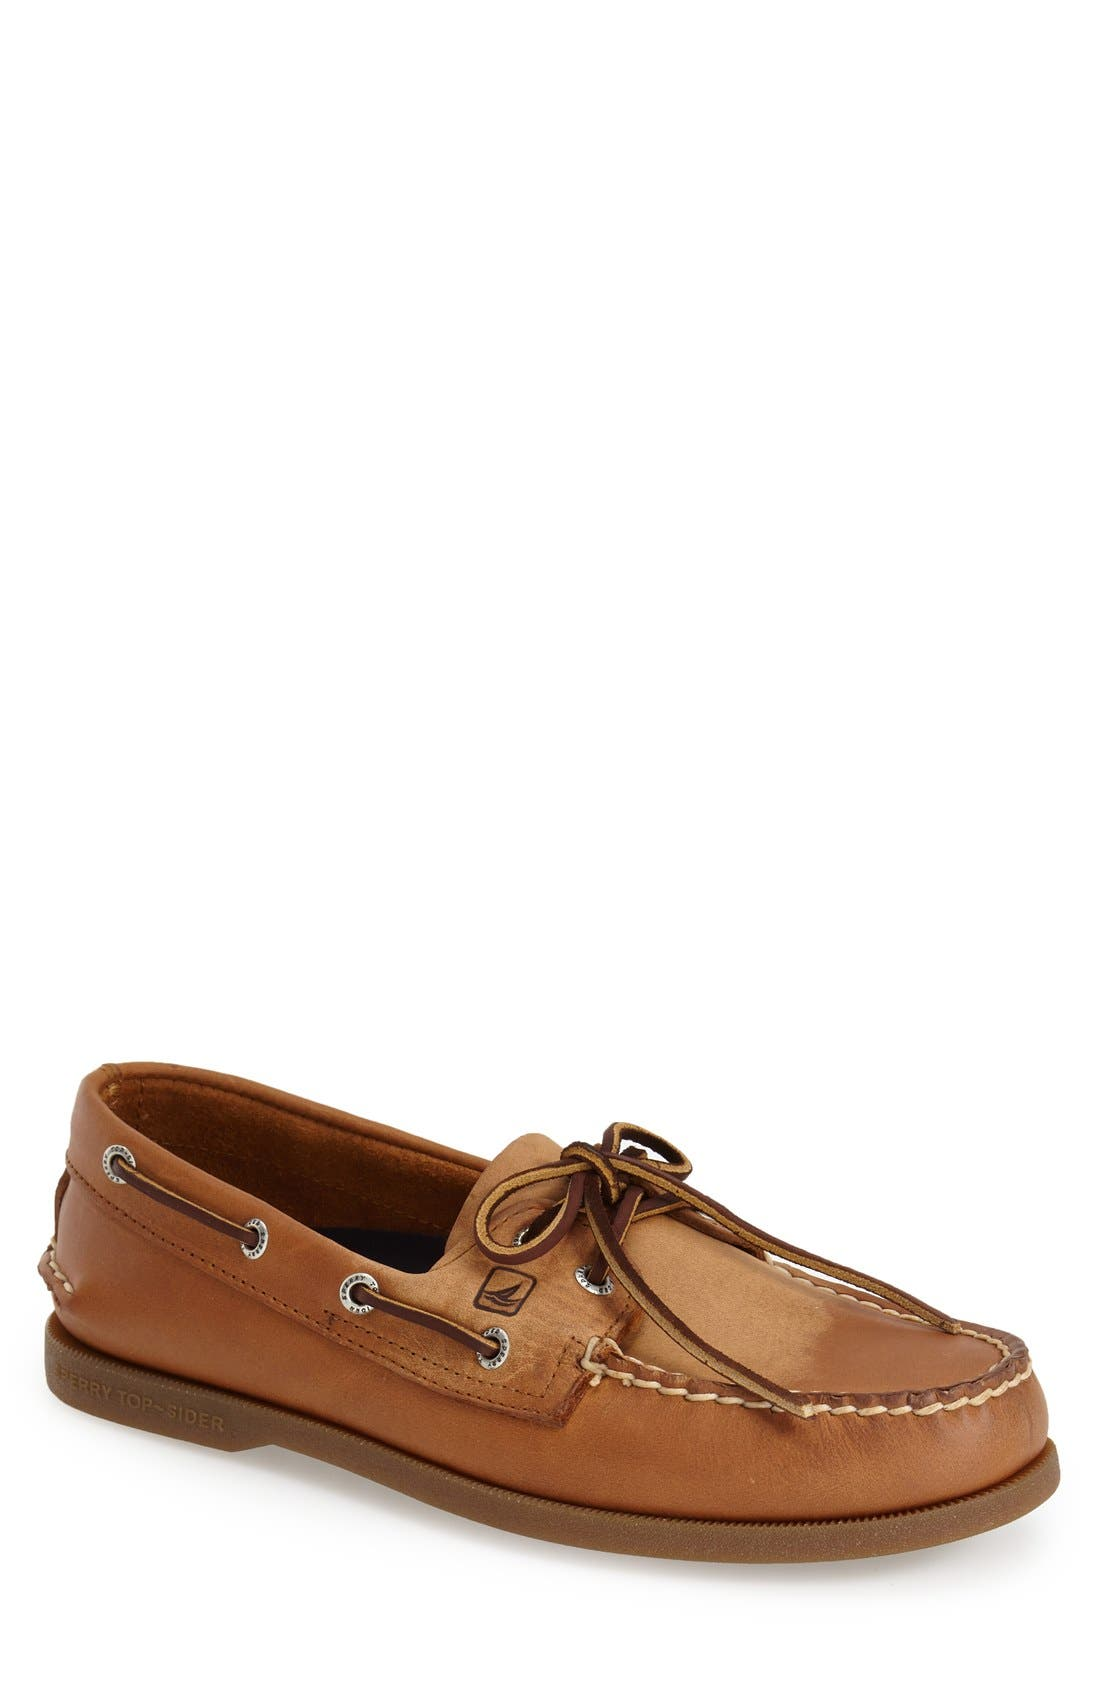 SPERRY 'Authentic Original' Boat Shoe, Main, color, 205